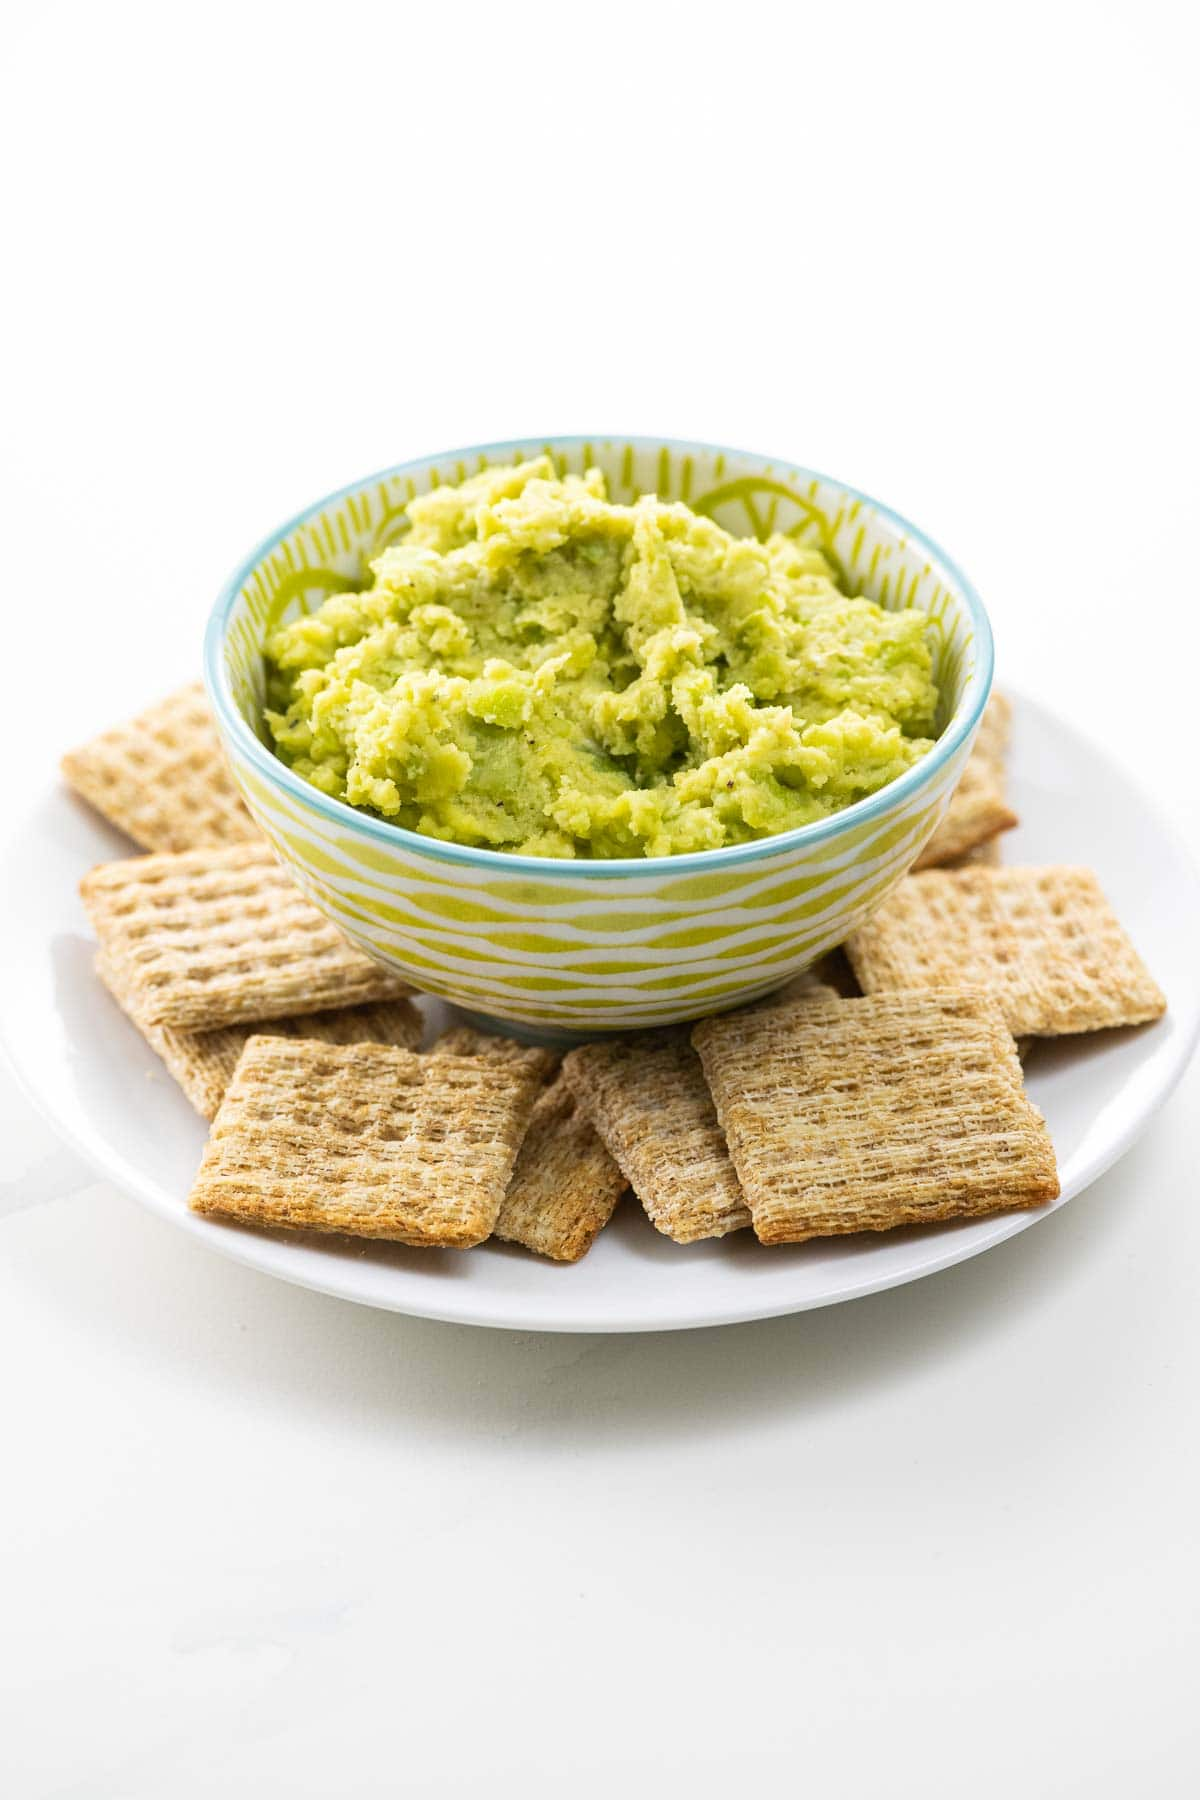 a bowl of fava bean puree with crackers on a plate